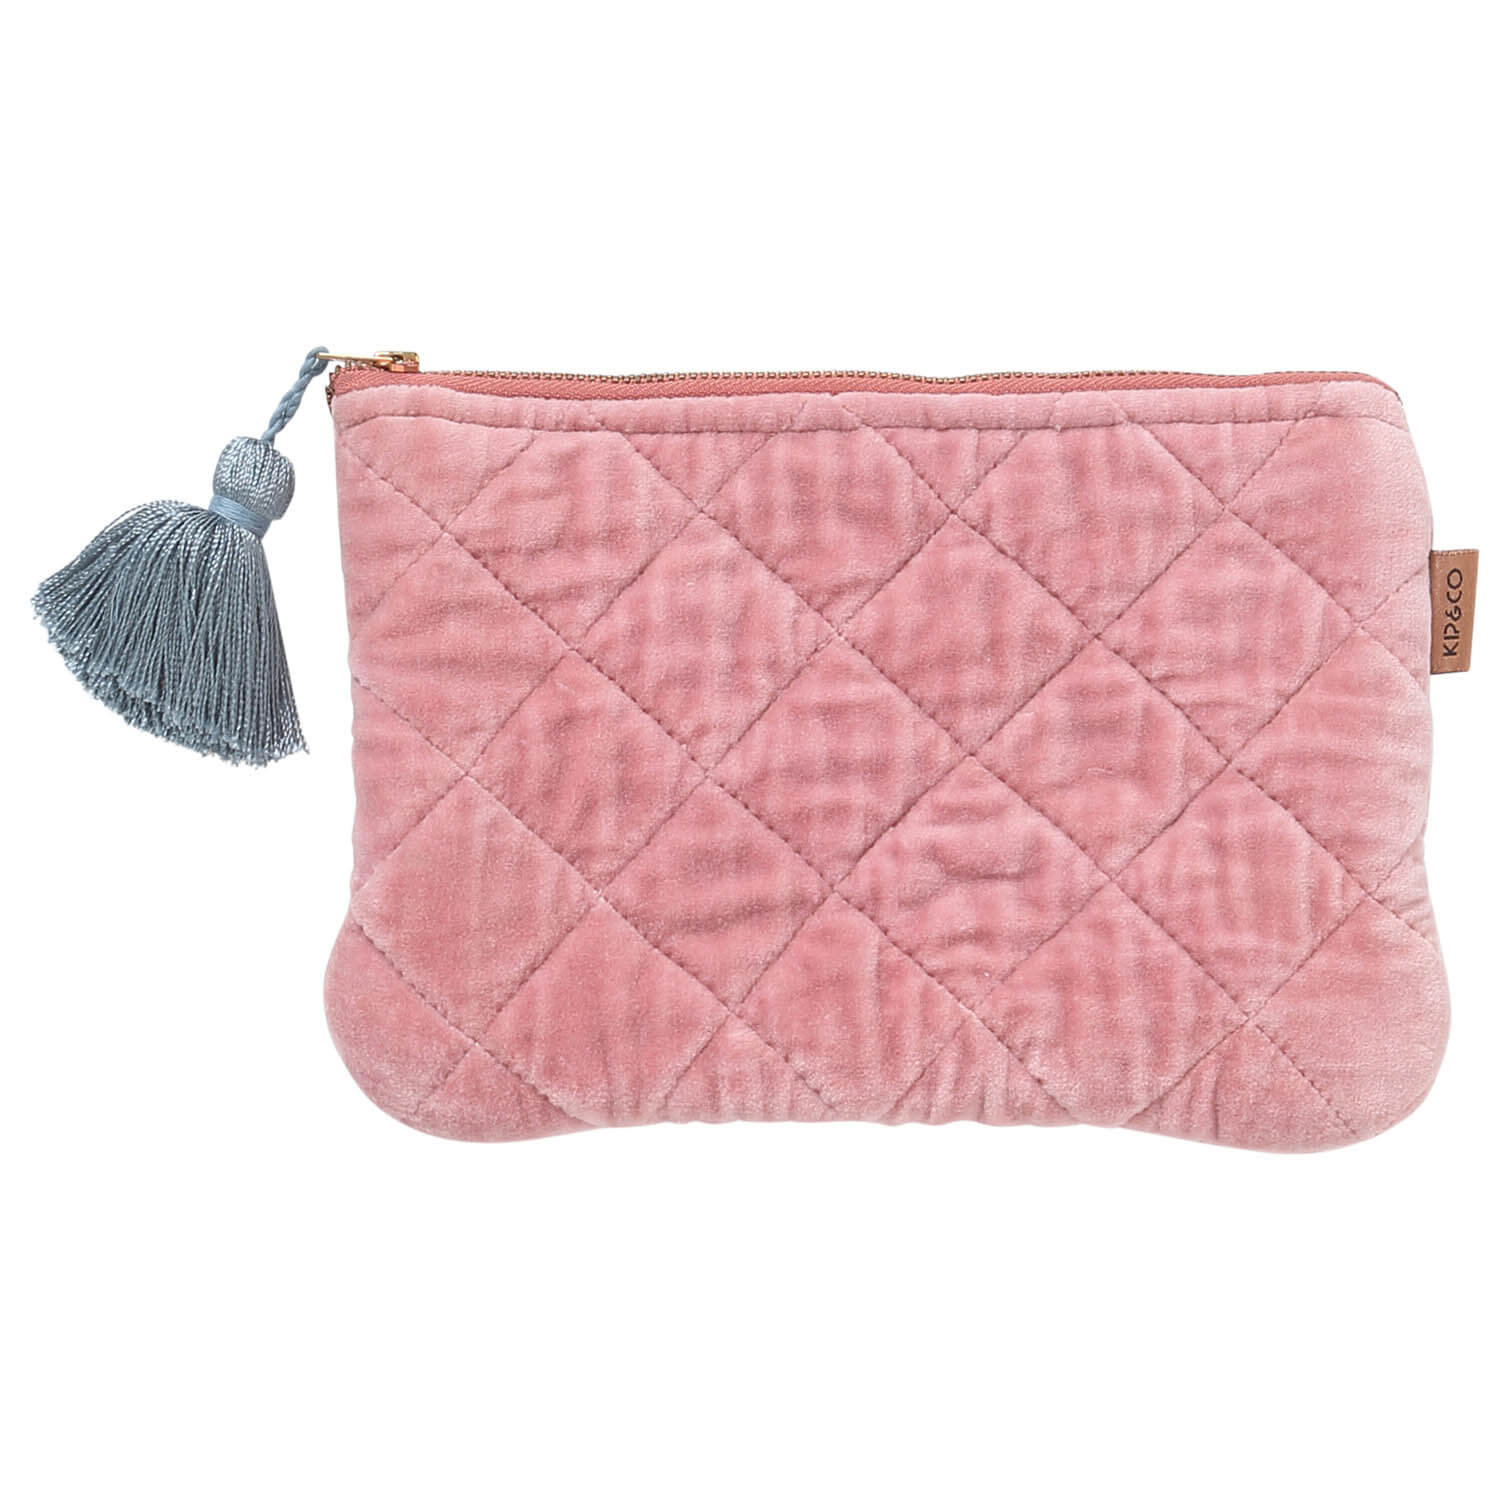 Kip and co cosmetic velvet purse - dusty pink | The Home Maven